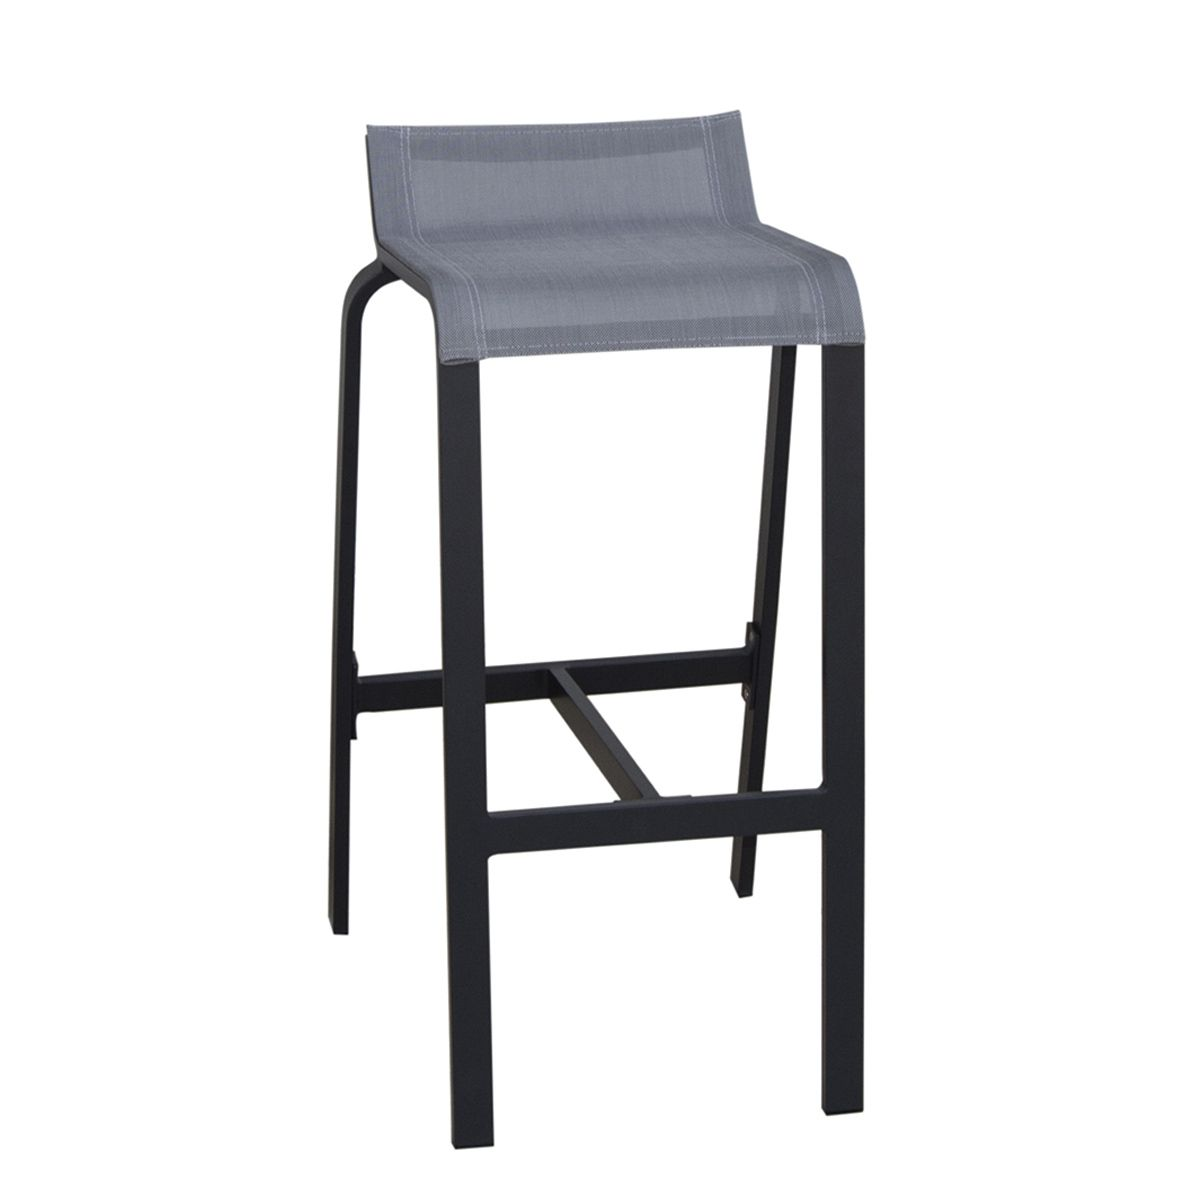 tabouret bar aluminium maison design. Black Bedroom Furniture Sets. Home Design Ideas